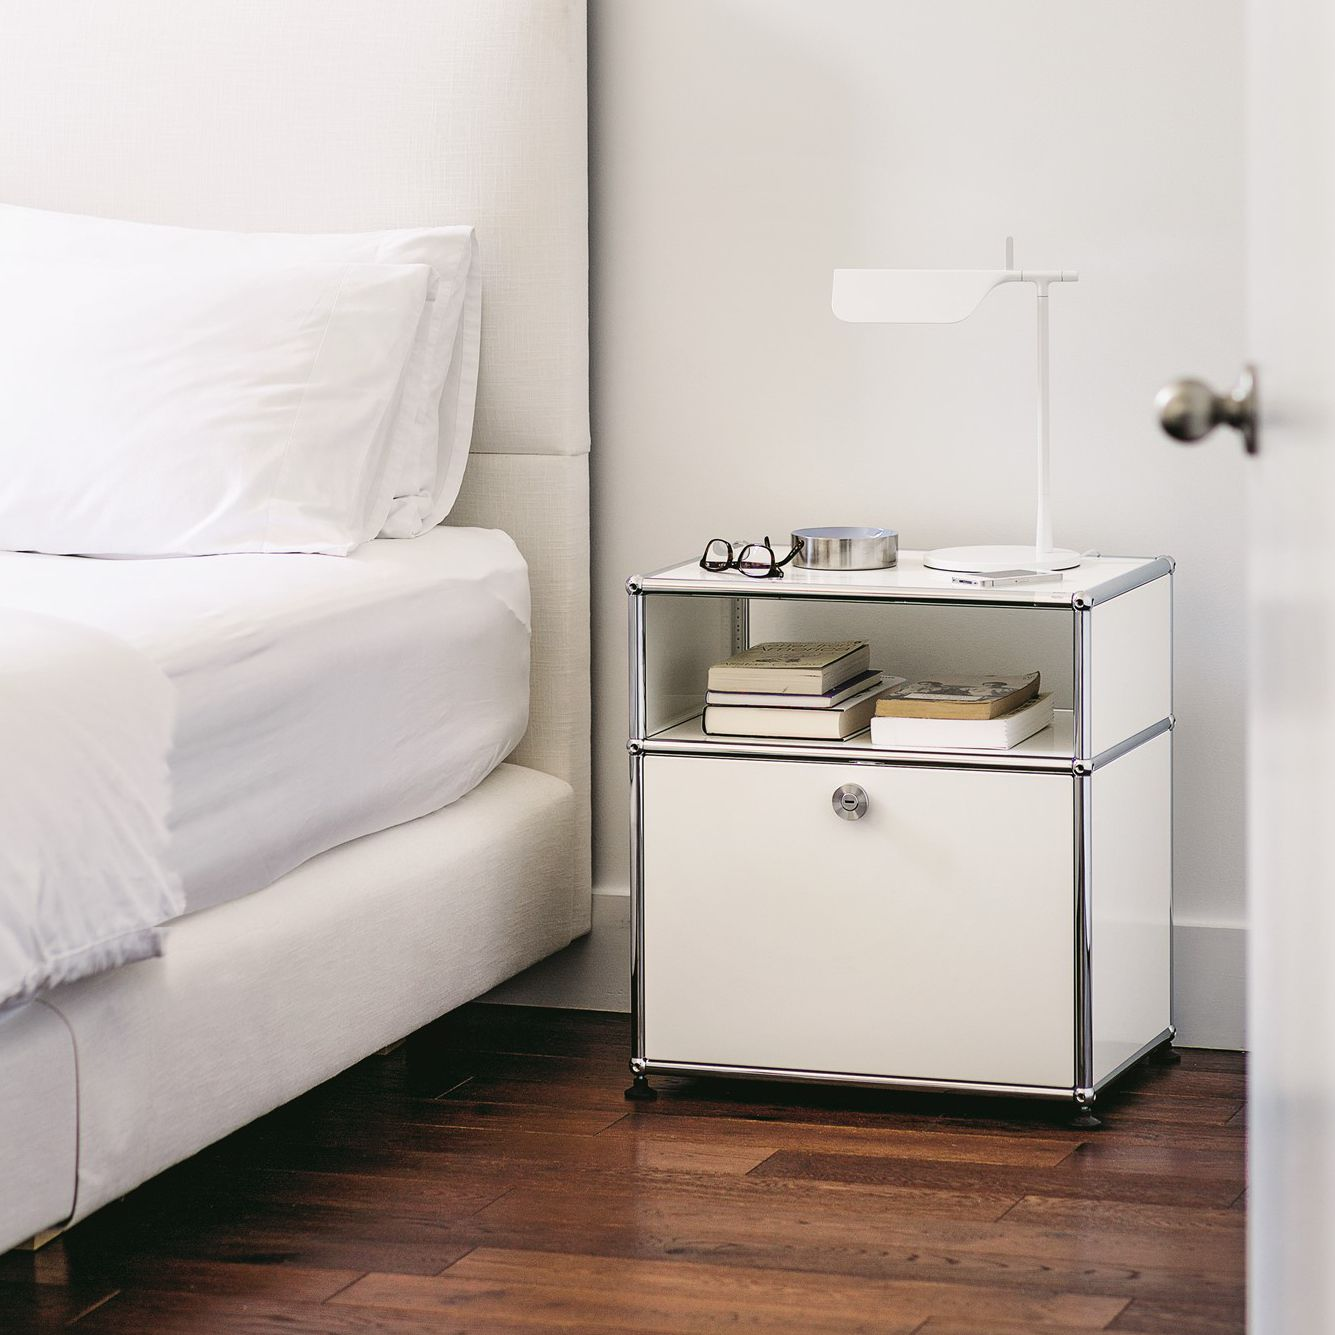 Contemporary bedside table metal rectangular with storage compartment